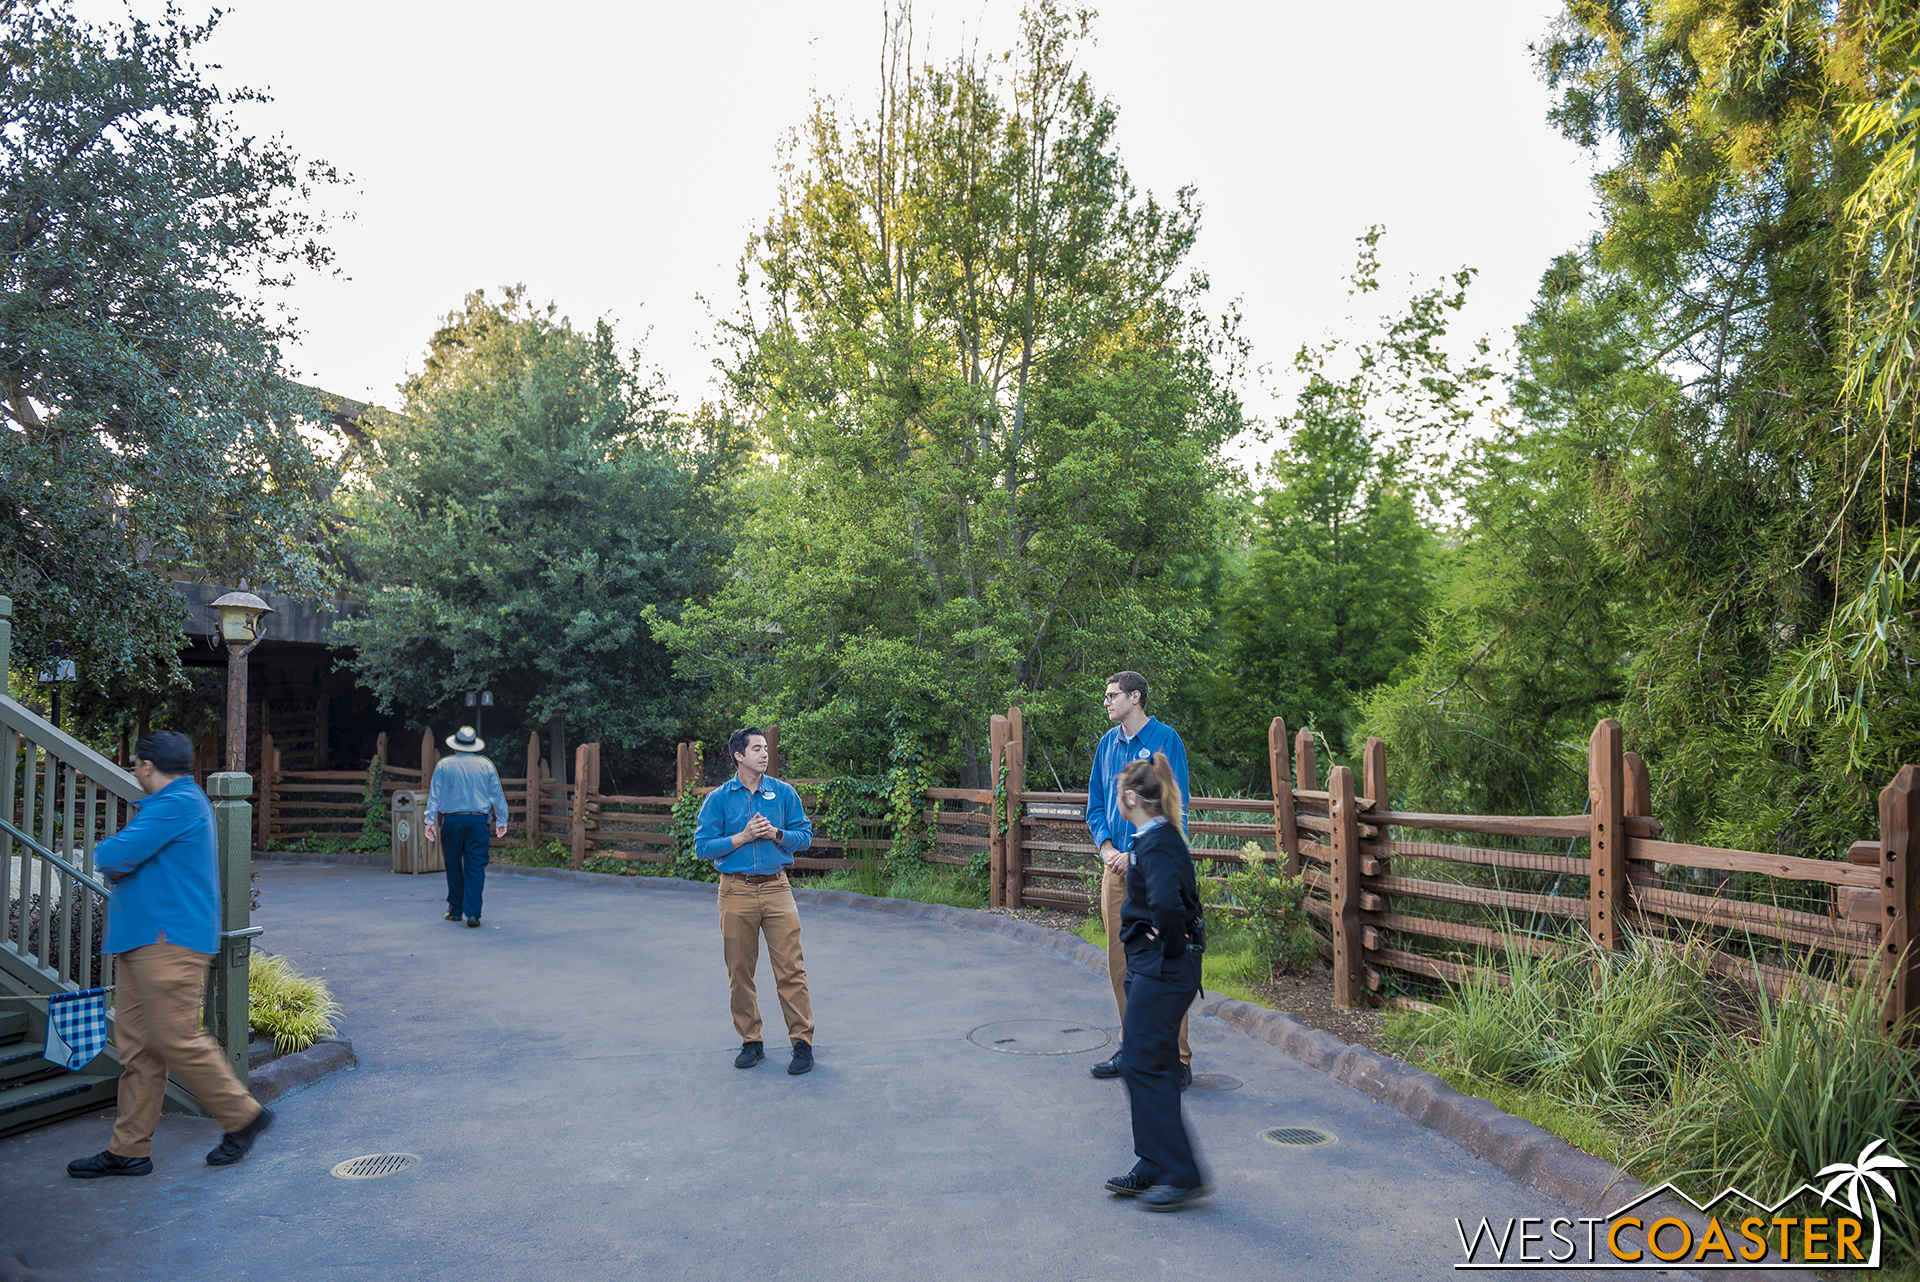 I was asked to not take pictures through the portal into Galaxy's Edge on the Critter Country entrance, because I'd be able to see some foliage and pole lights within.  To be respectful, I complied.